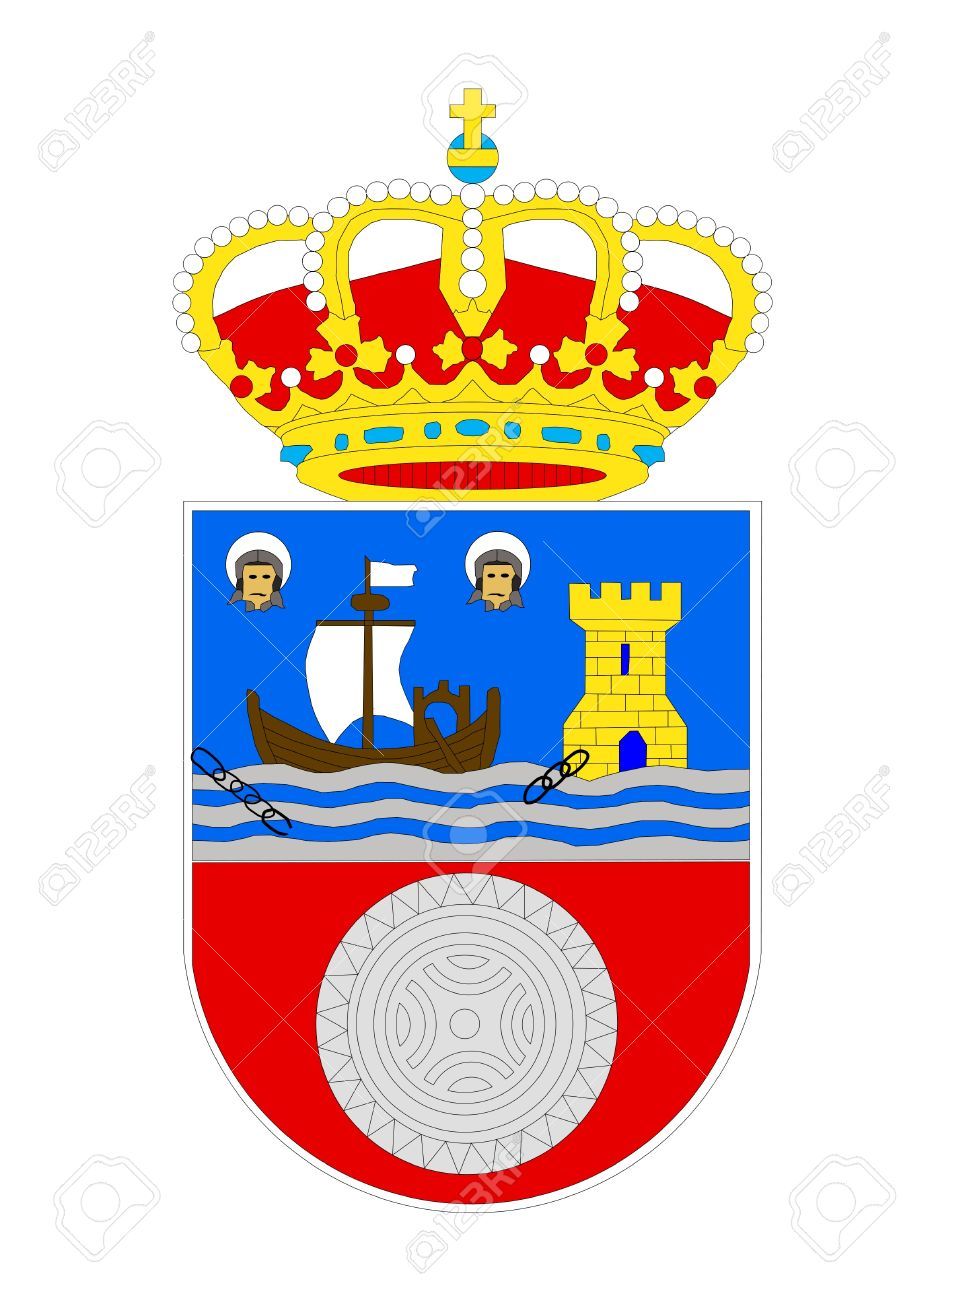 Spanish Province Of Cantabria Coat Of Arms; Isolated On White.